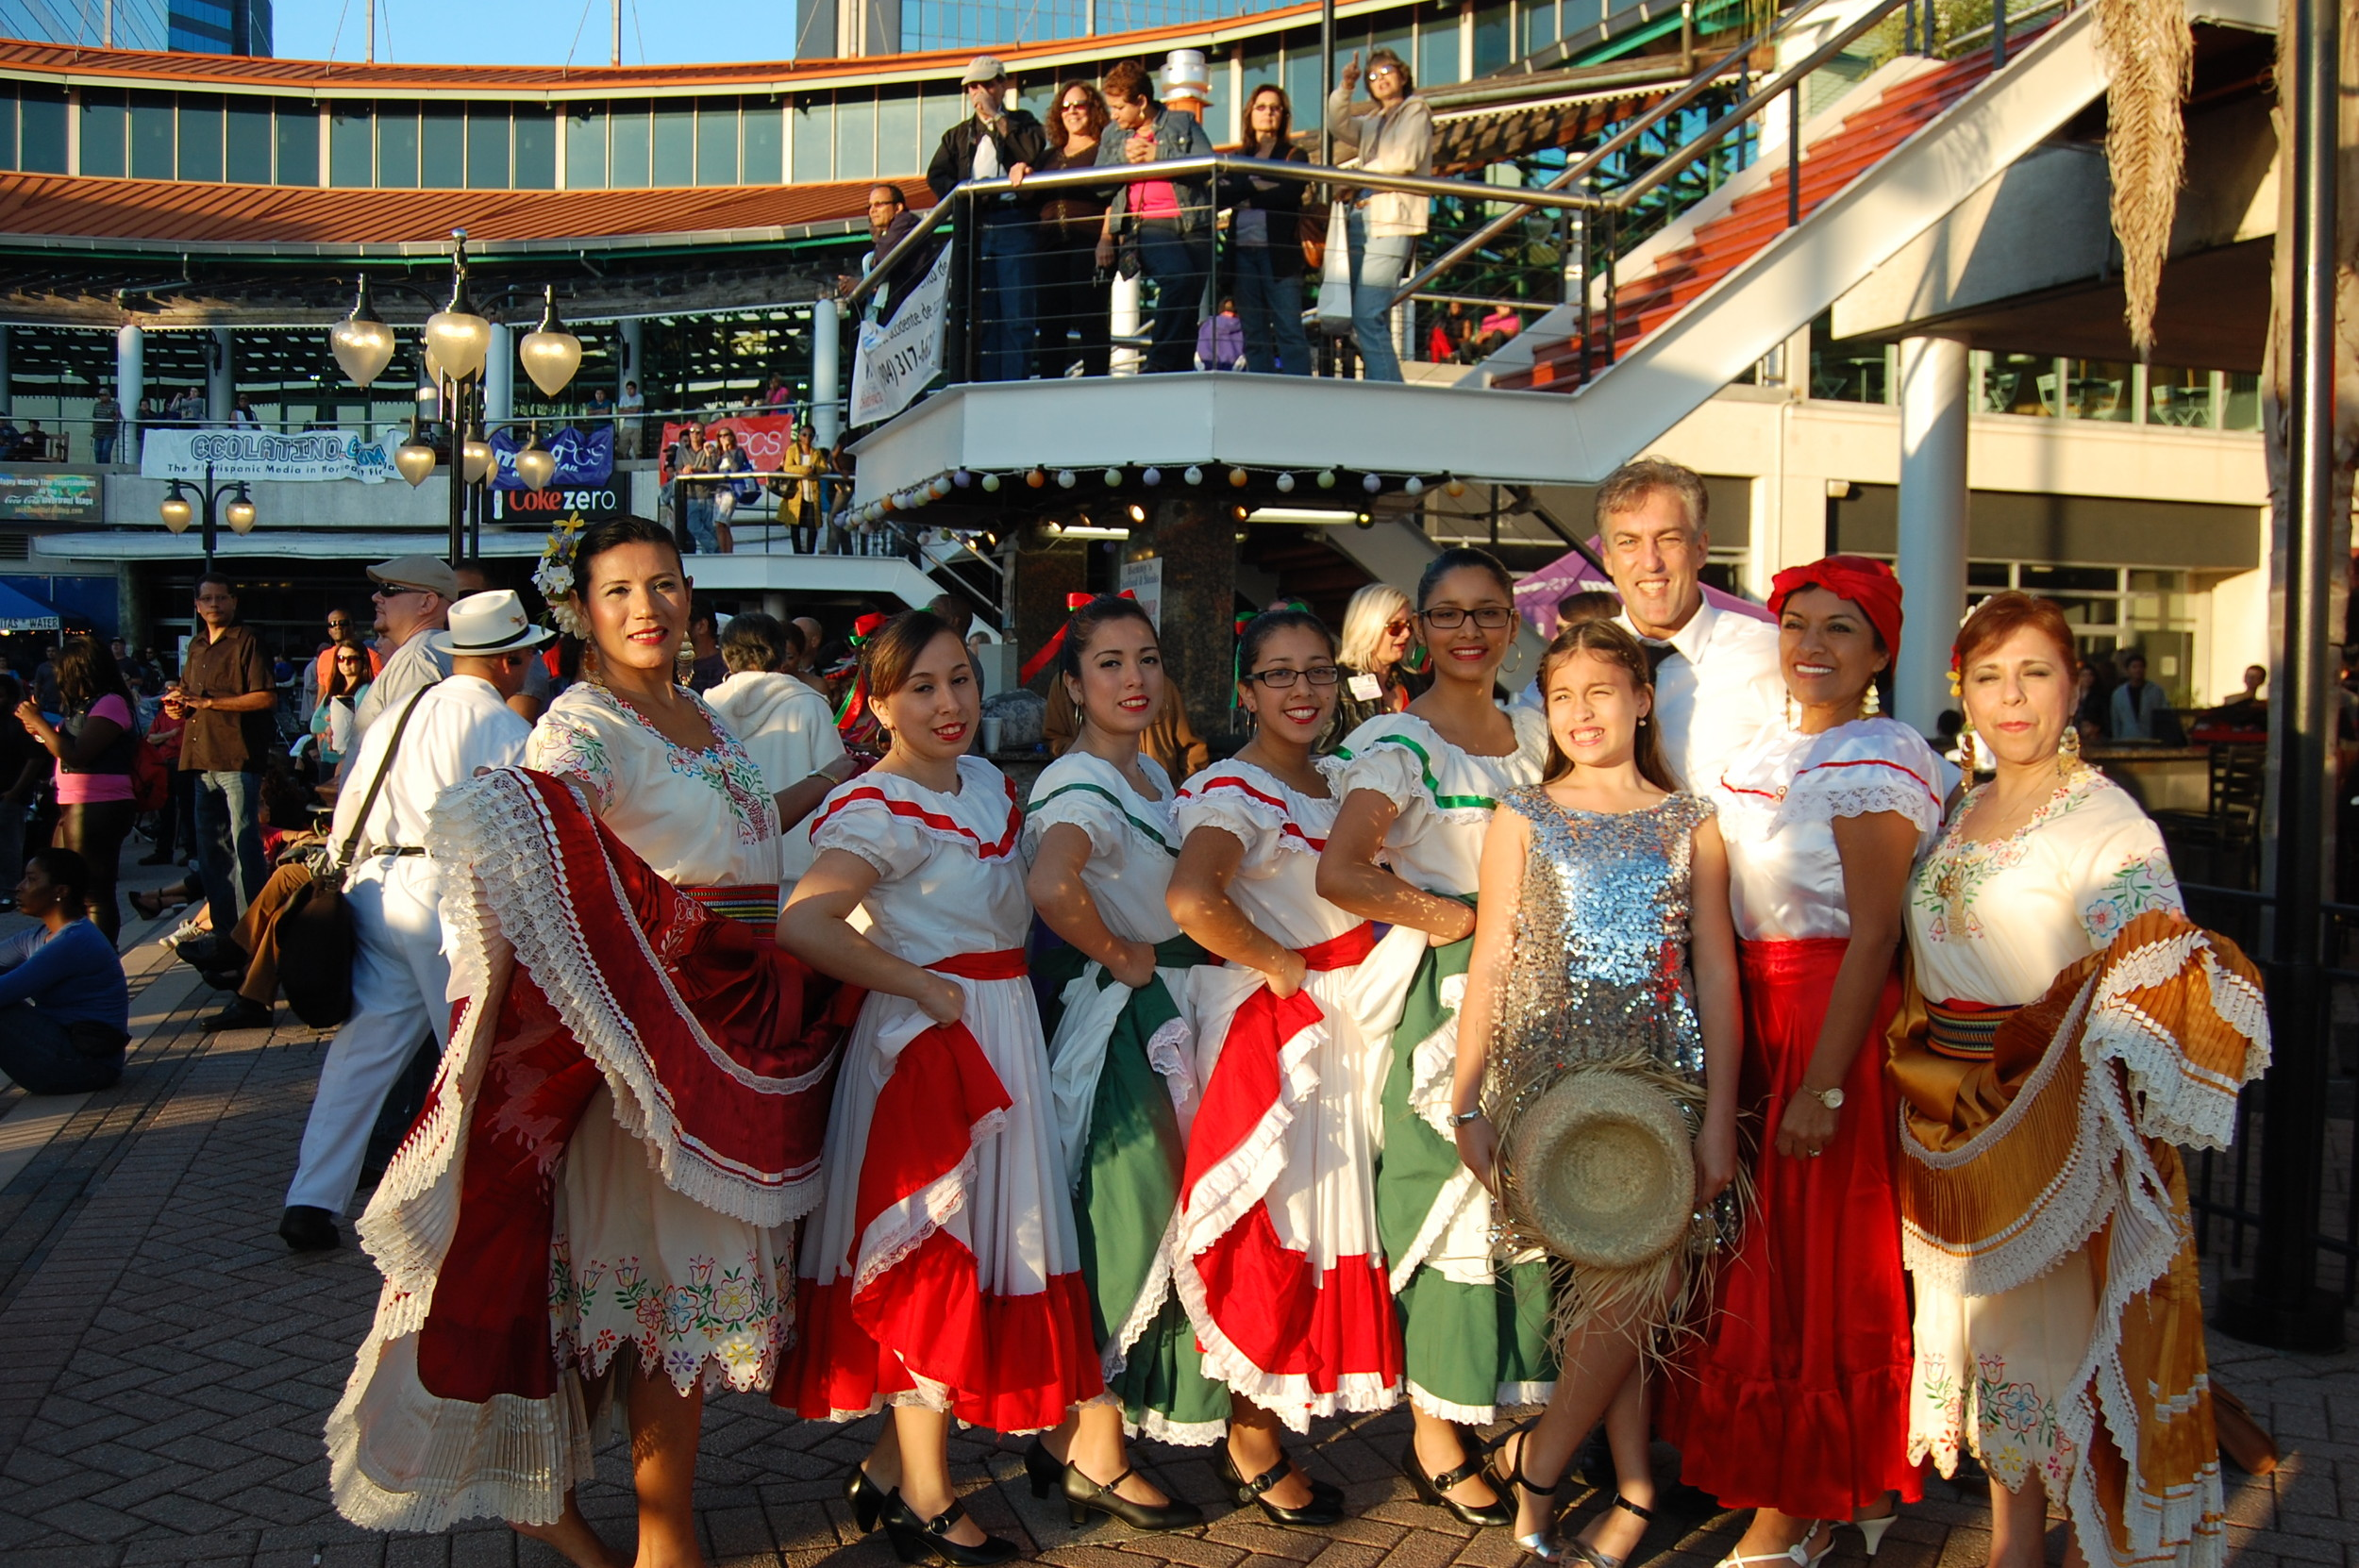 Artistic director Carlos Bouvier surrounded by cultural performers